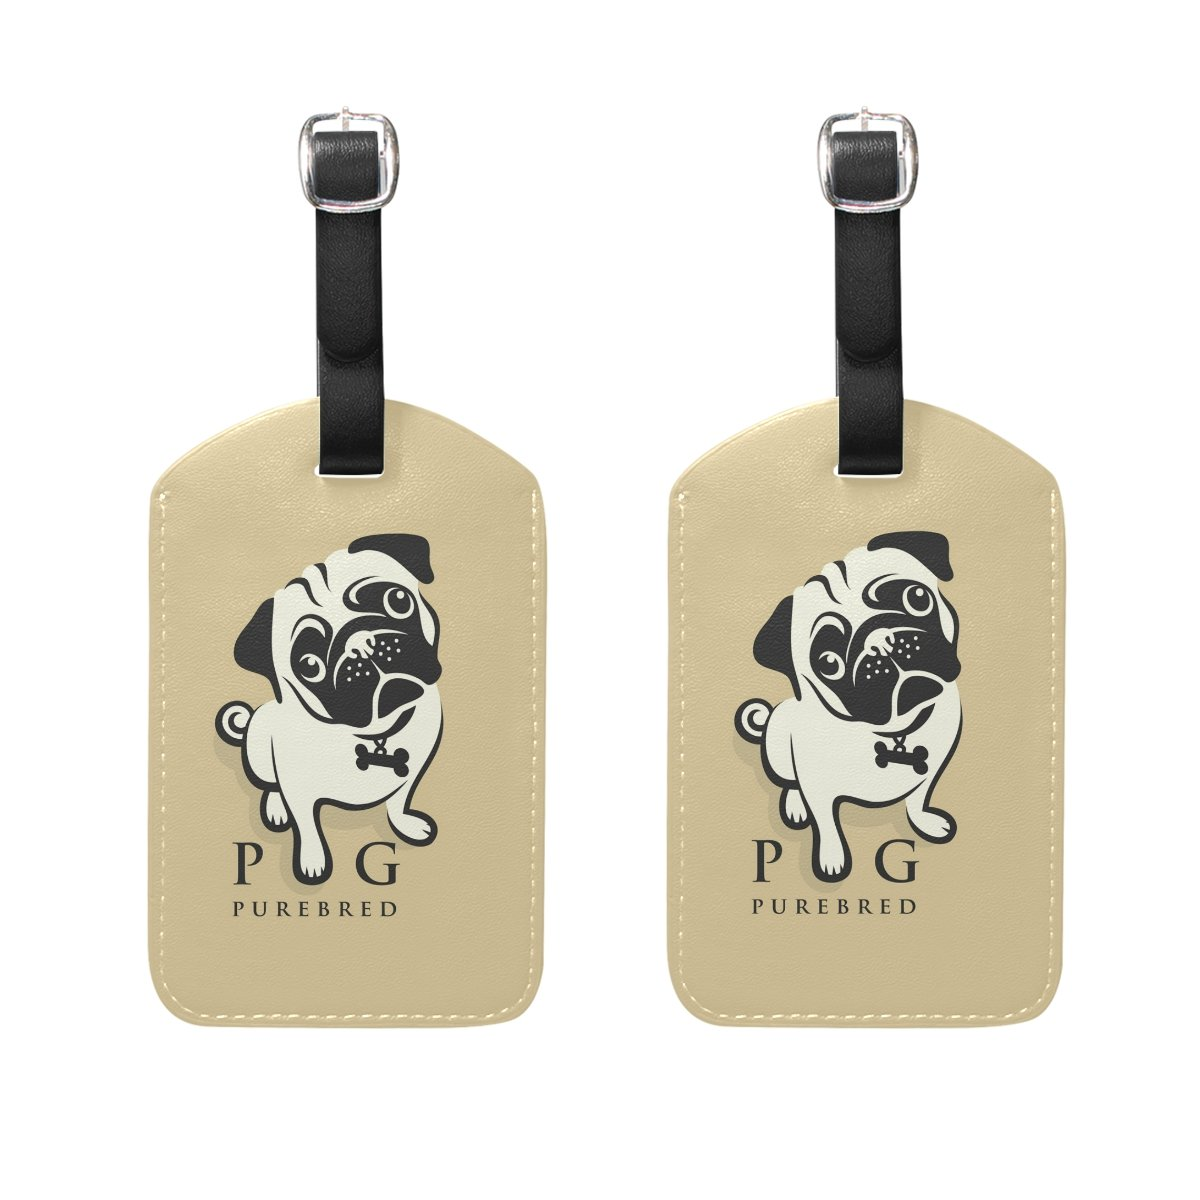 COOSUN Pug Dog Luggage Tags Travel Labels Tag Name Card Holder for Baggage Suitcase Bag Backpacks, 2 PCS